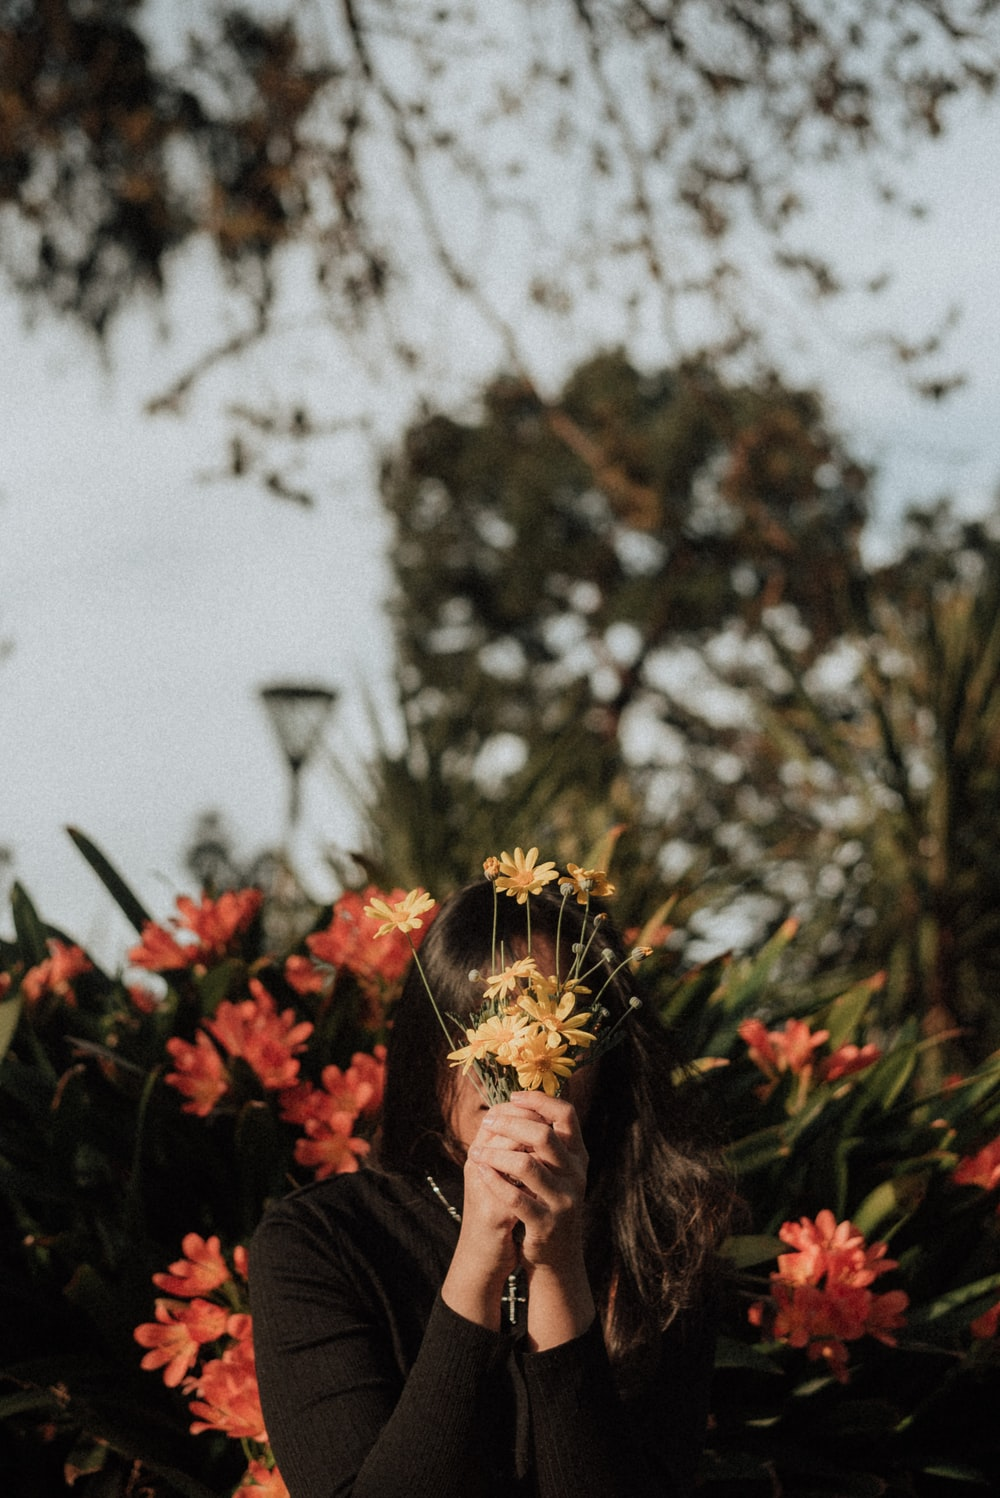 woman hiding her face with yellow flowers during daytime